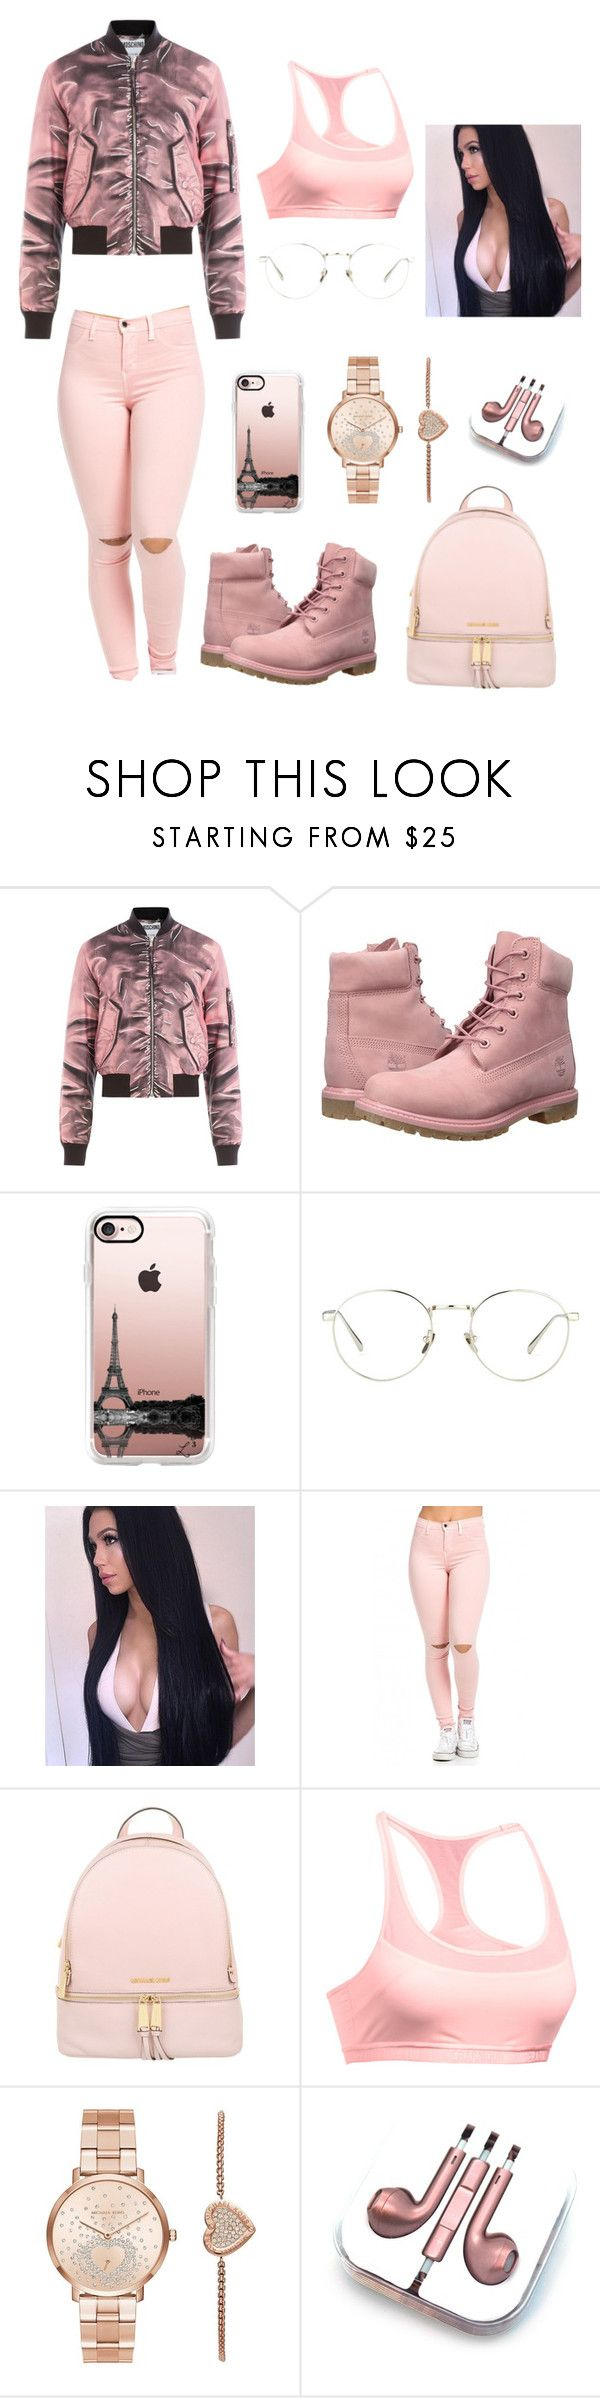 """Rose Gold "" by nerdyswaggs ❤ liked on Polyvore featuring Moschino, Timberland, Casetify, Linda Farrow, MICHAEL Michael Kors, Under Armour, Michael Kors and PhunkeeTree"